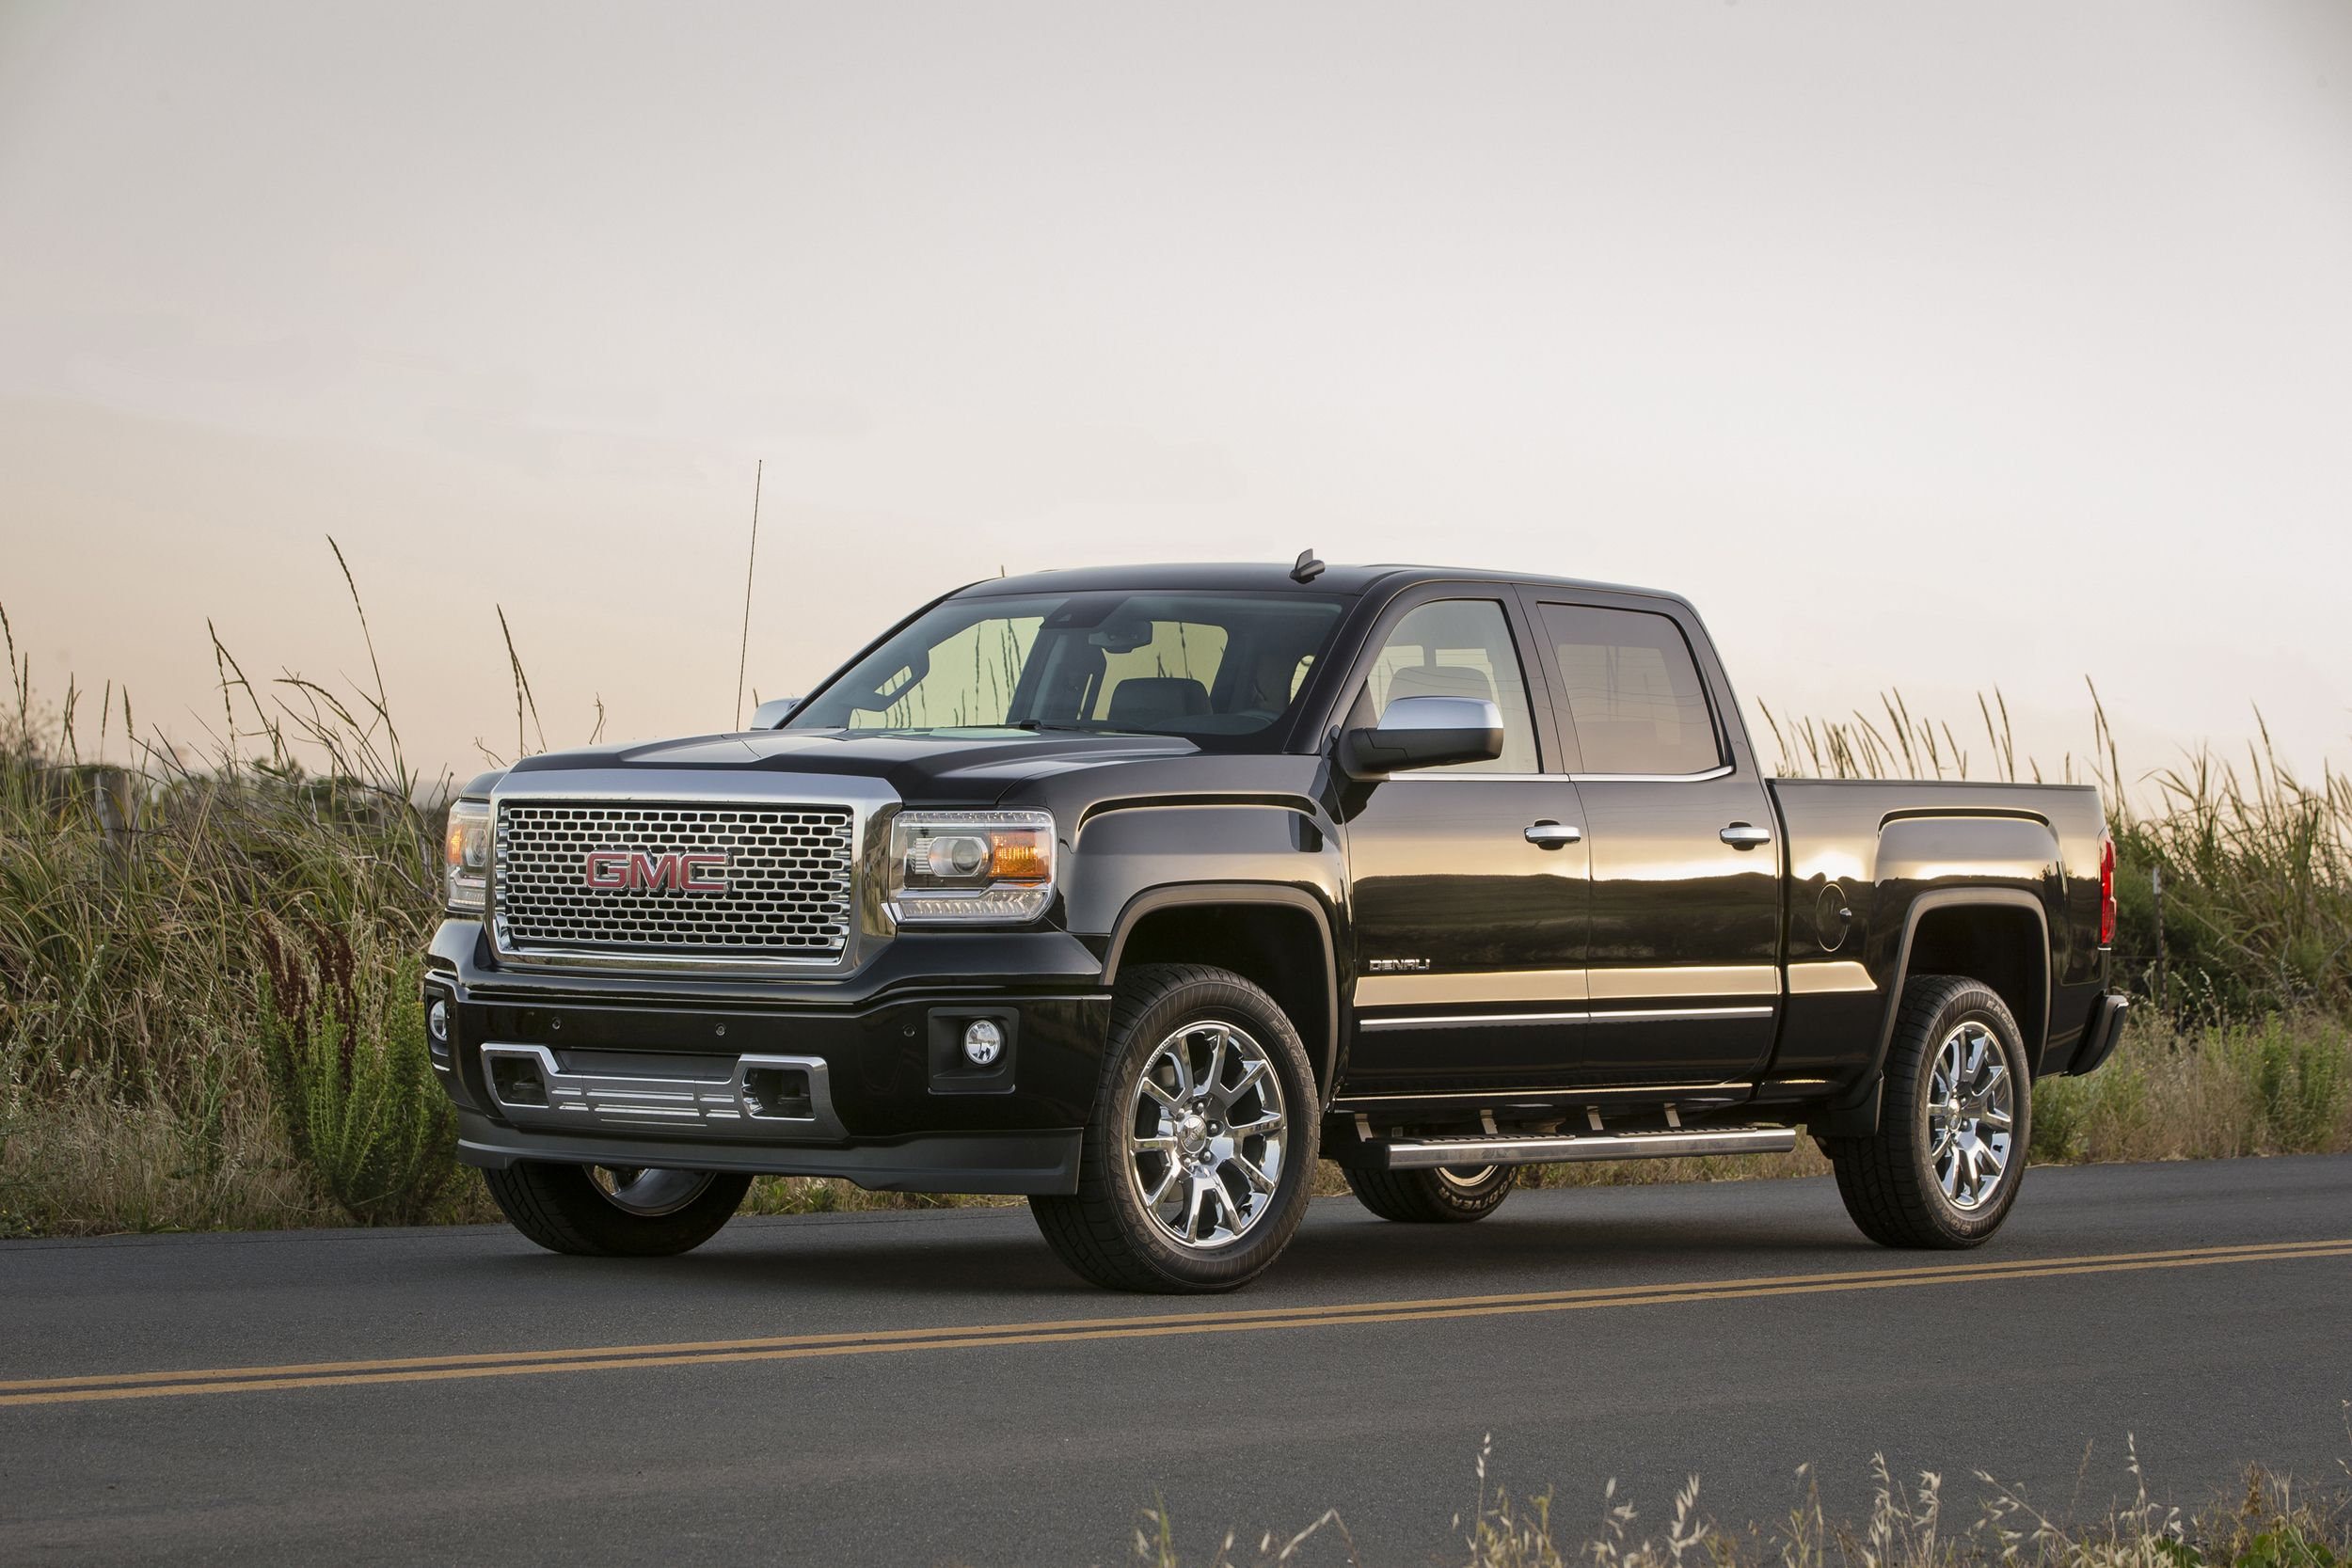 2015 Gmc Sierra 1500 Denali Gmc Fuel Efficient Trucks Best